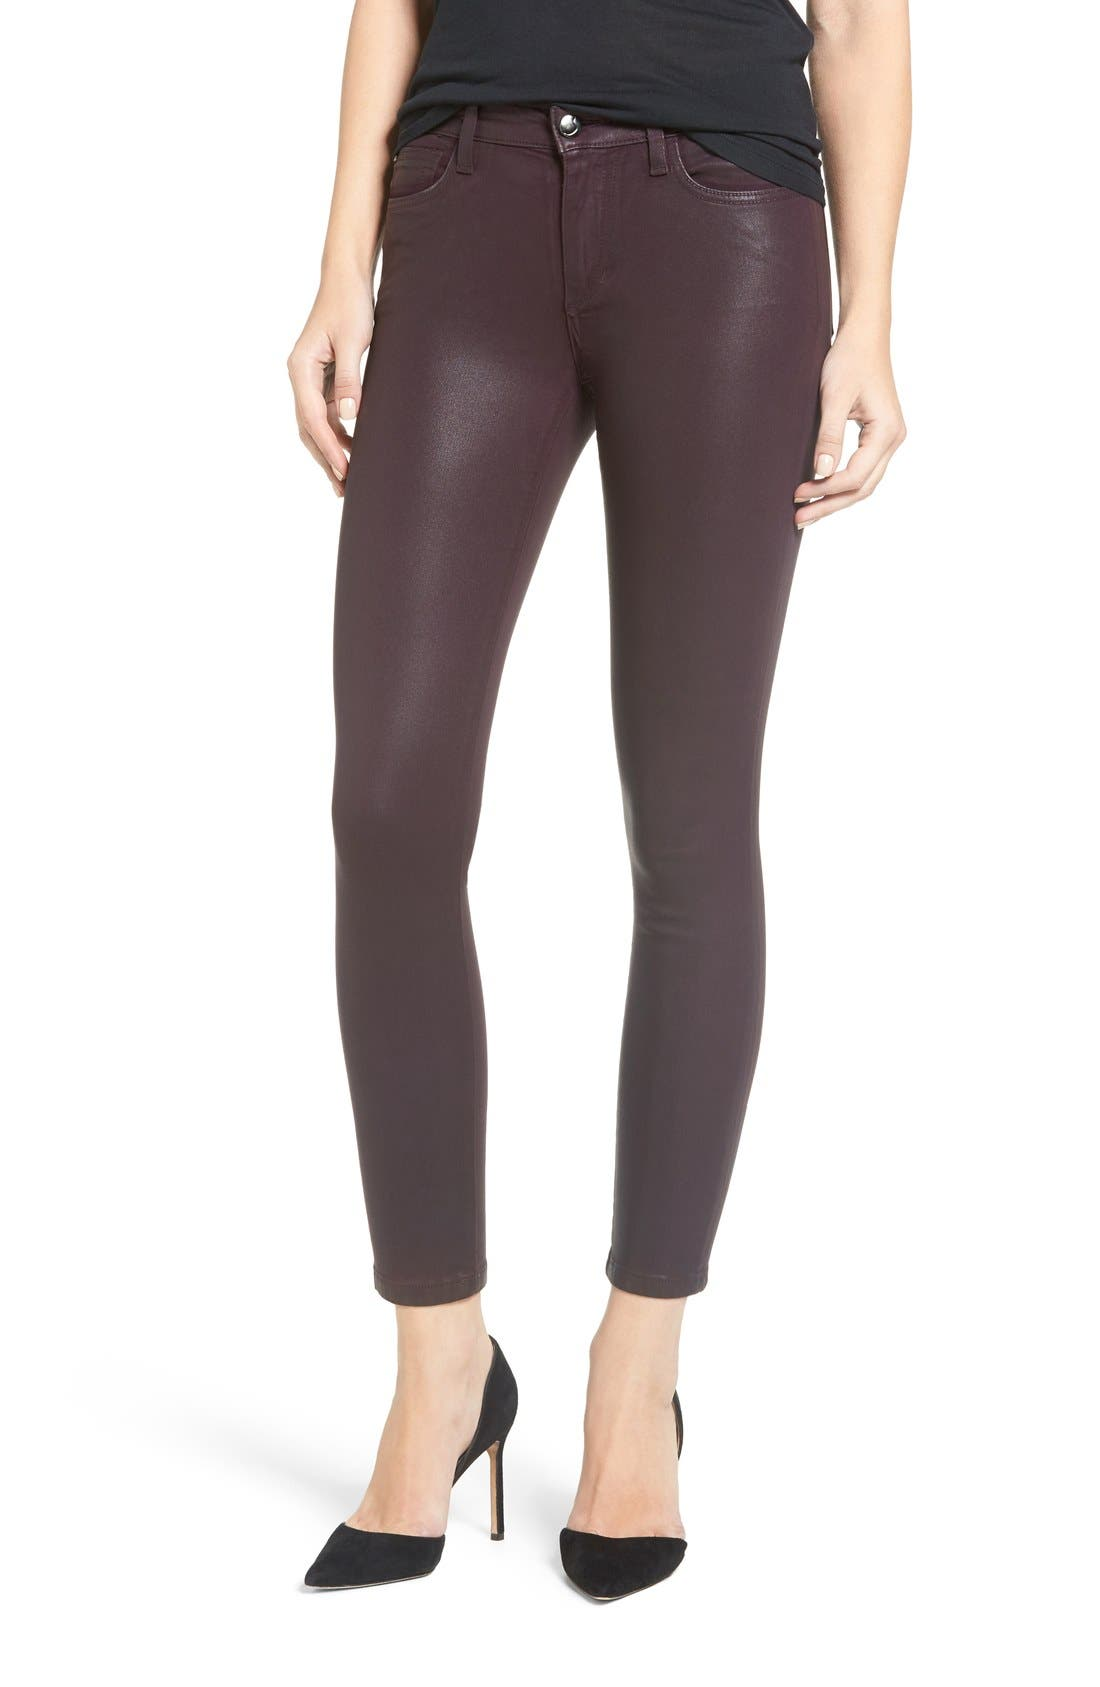 Jeans Icon Ankle Skinny Jeans,                         Main,                         color, Deep Orchid Coated